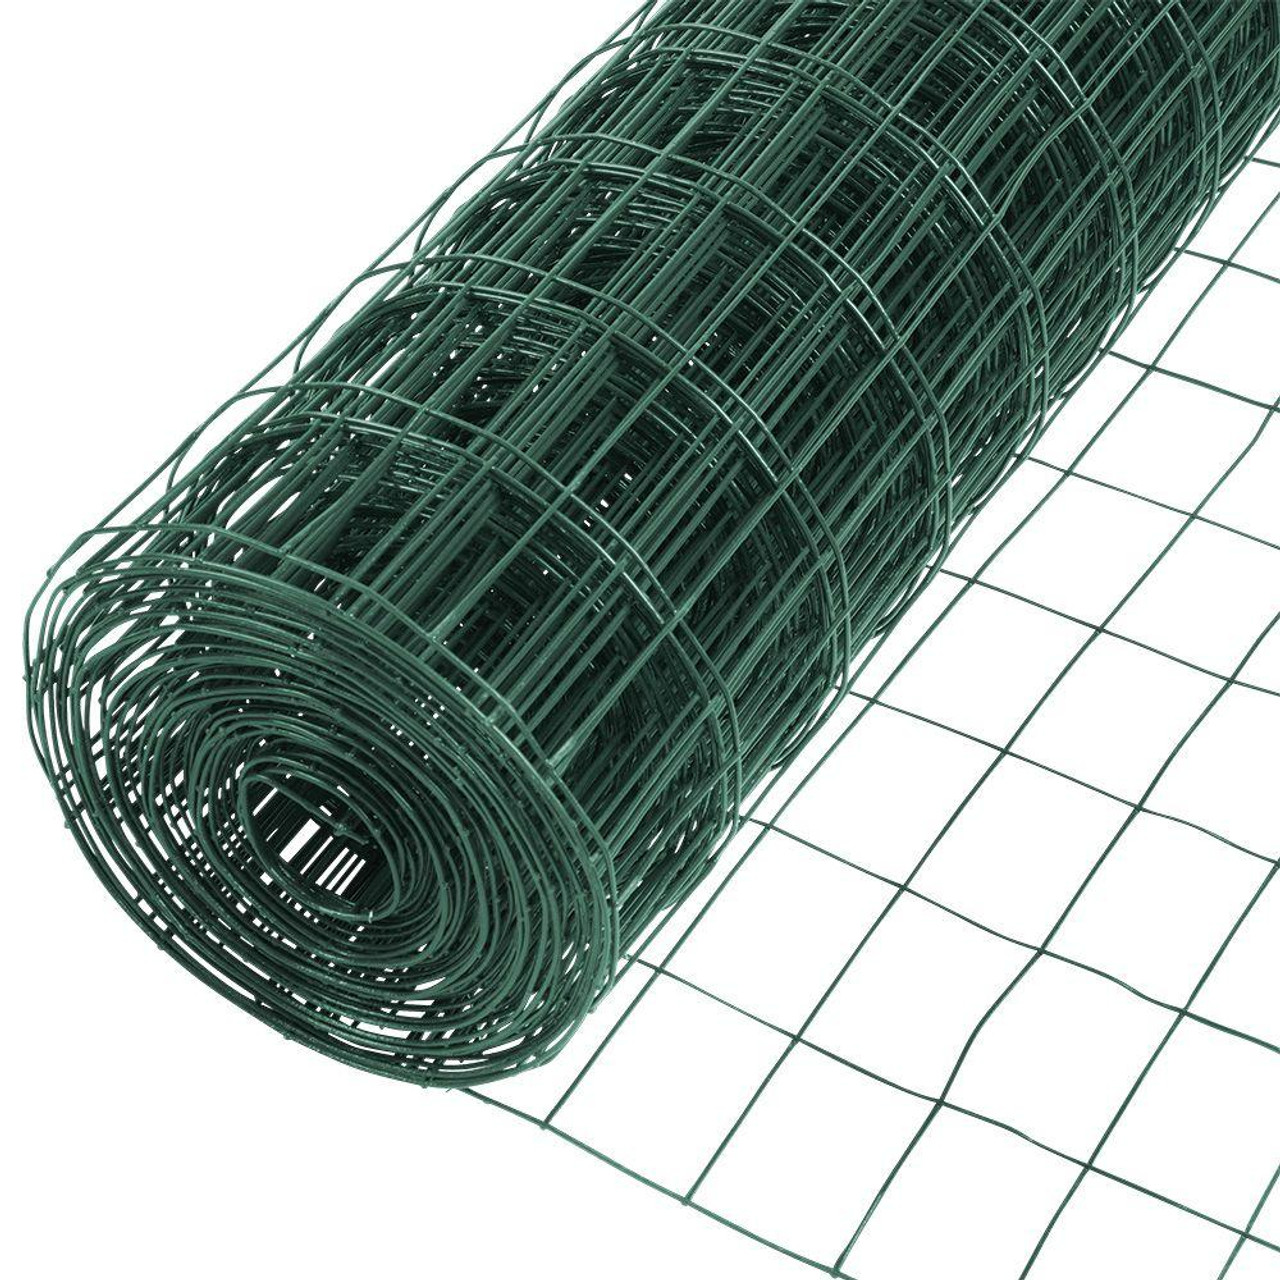 16 Gauge Green Vinyl Coated Welded Wire Mesh Size 2 inch by 3 inch ...